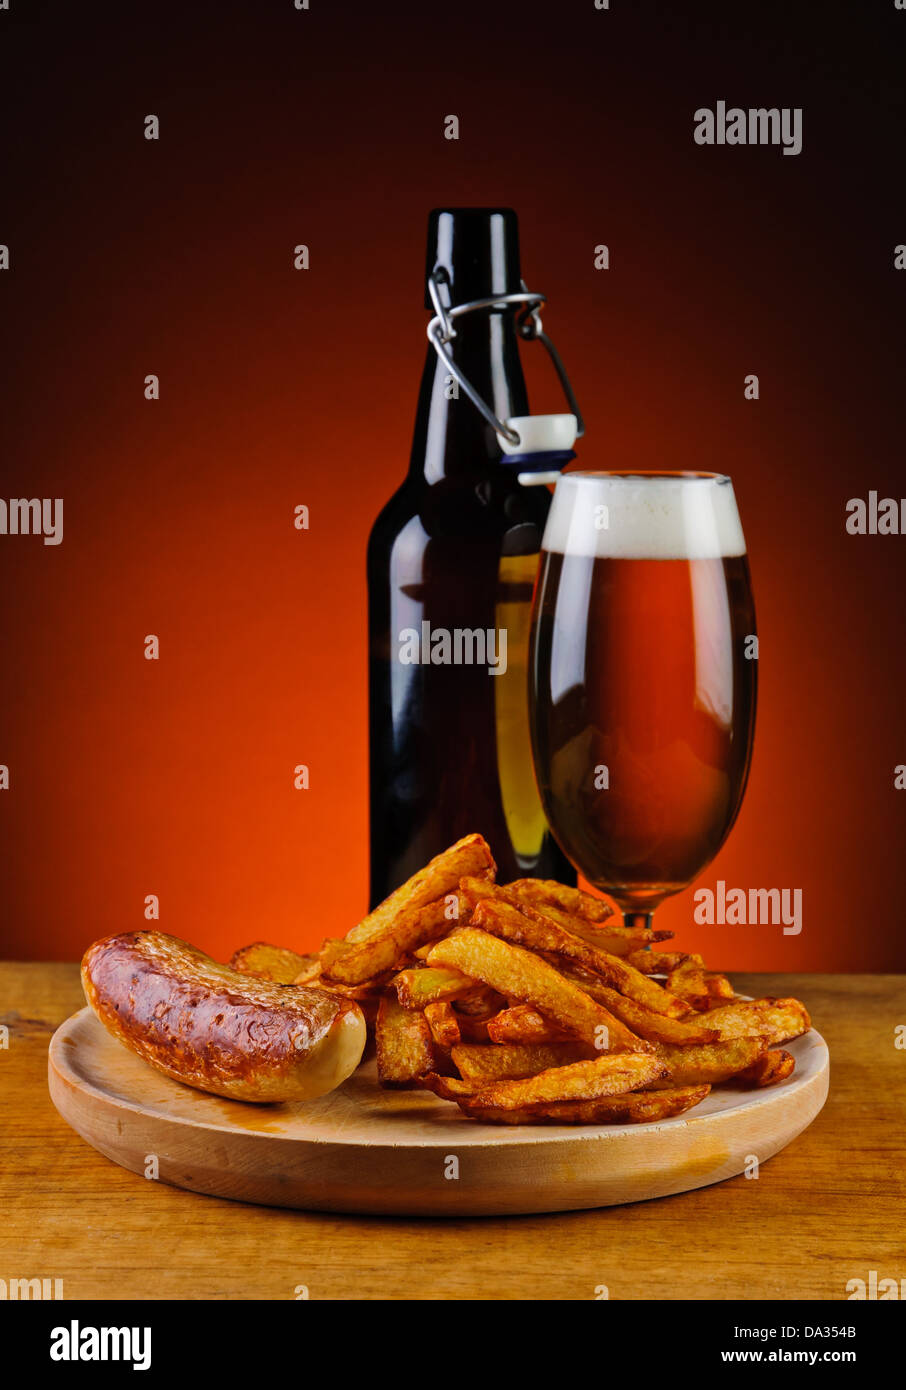 grilled sausage, french fries and fresh beer Stock Photo